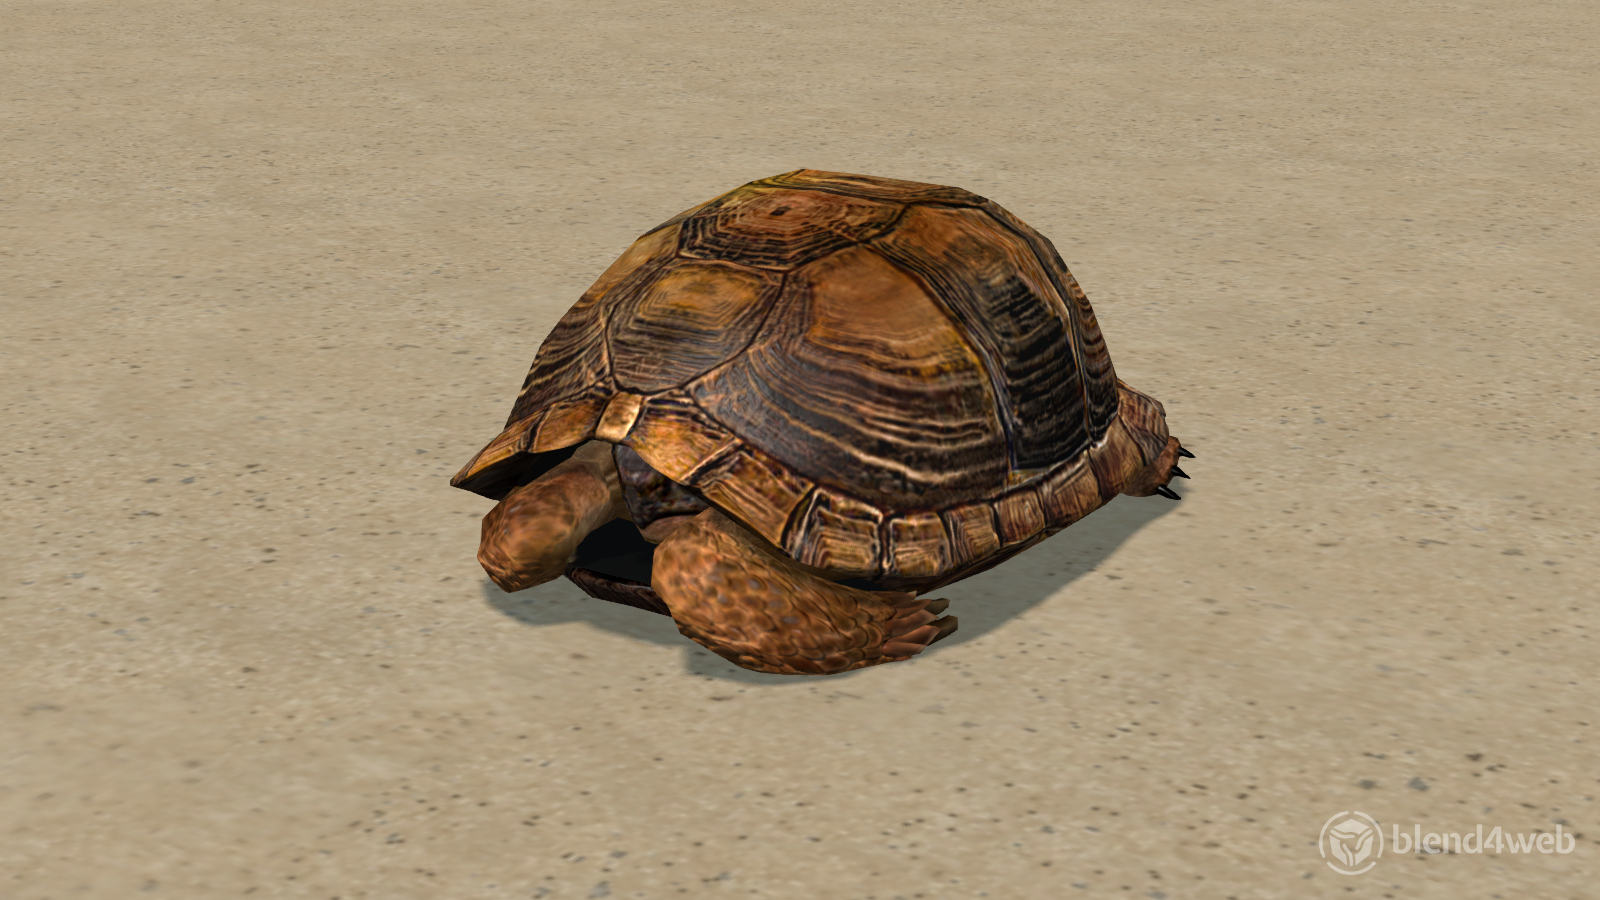 Tortoise preview